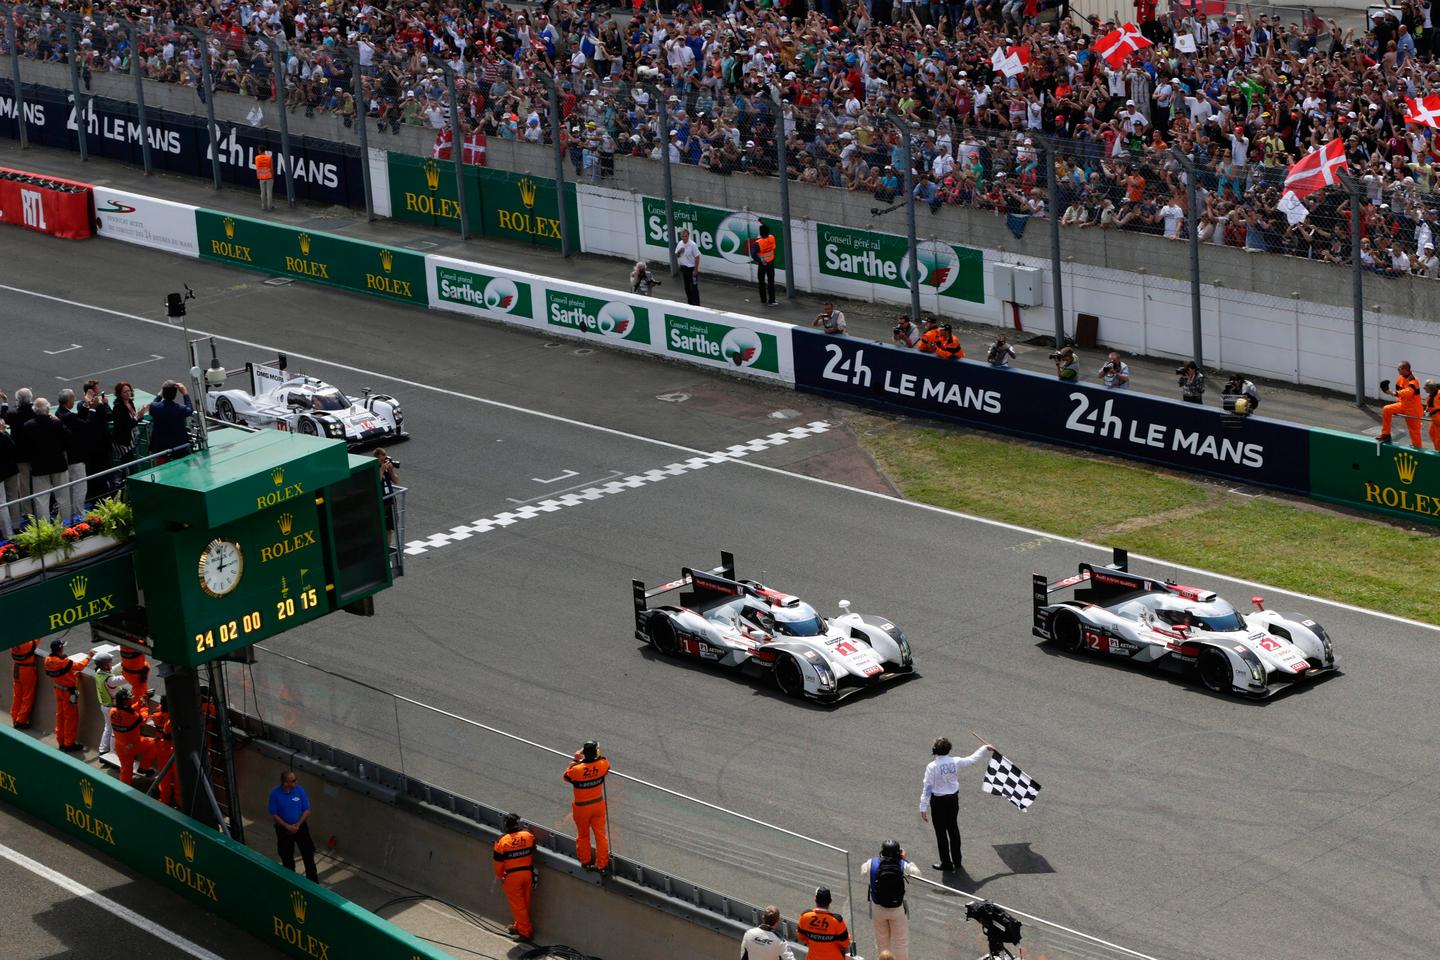 The Audi of Marcel Fassler, Benoit Treluyer and Andre Lotterer eventually took the victory in Sunday's event, but not before both Toyota and Porsche had led and looked like winning. For this particular driver grouping, it was the third win in the last four years (it also won in 2011 and 2012), with last year's winning combo of Tom Kristensen, Marc Gene and Lucas Di Grassi taking second place three laps down in another Audi, giving the marque a 1-2 finish against all odds